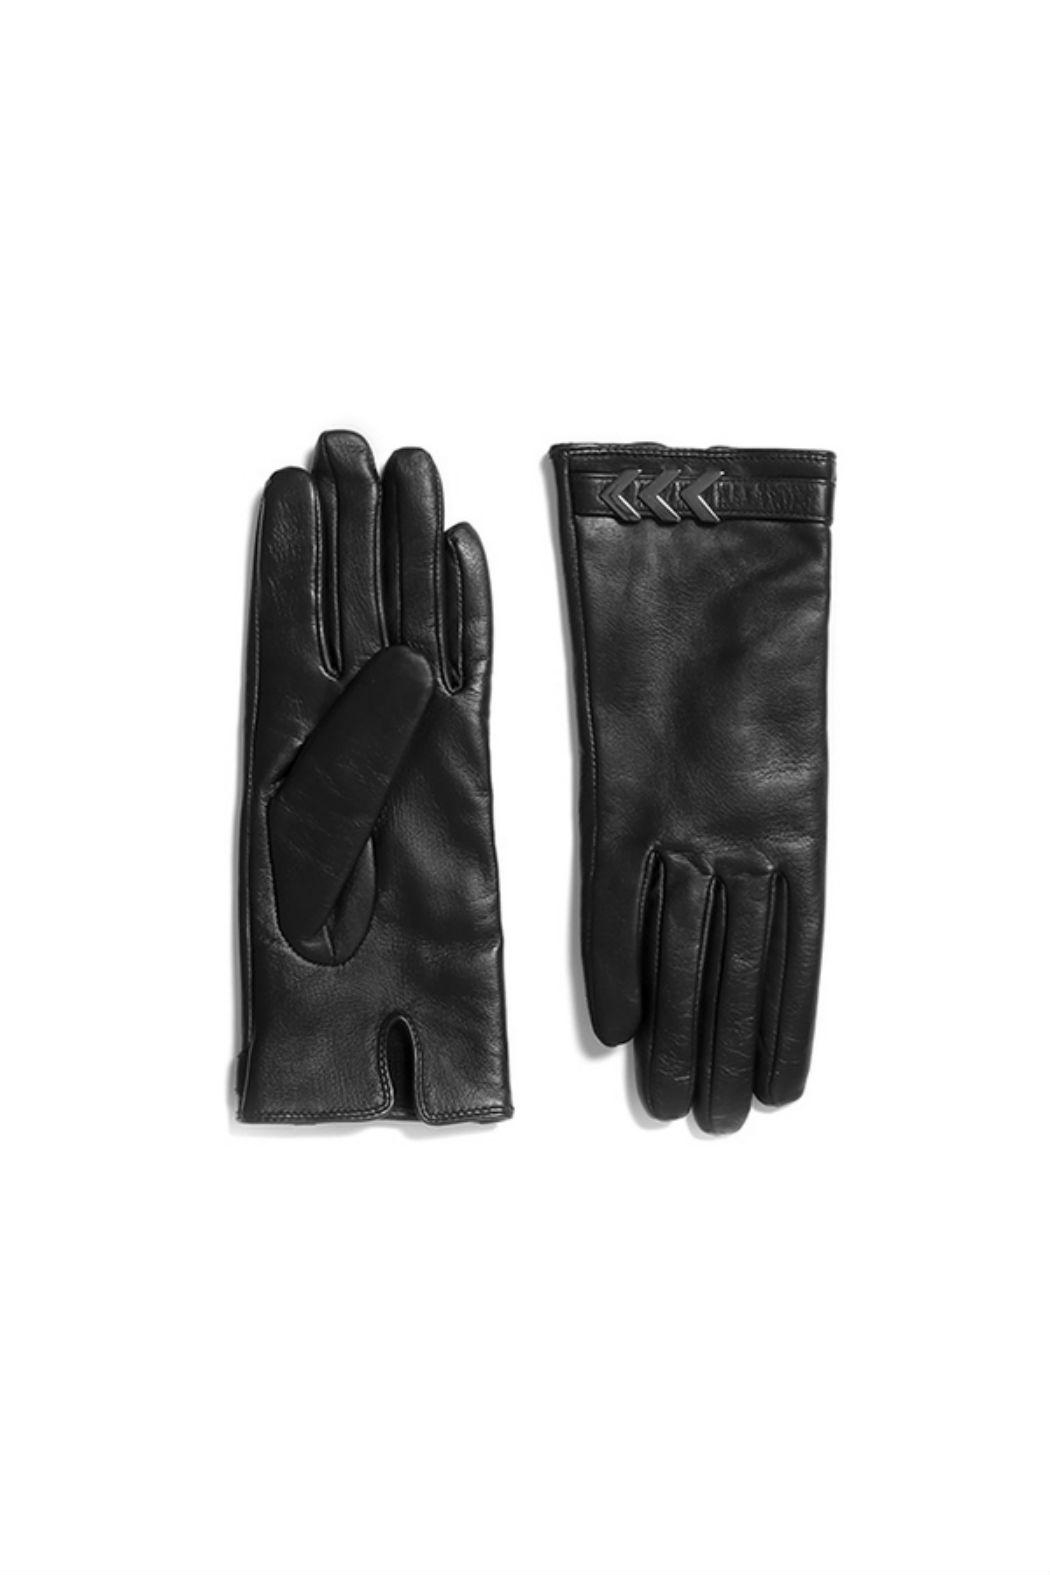 Mackage Boga Leather Gloves - Main Image